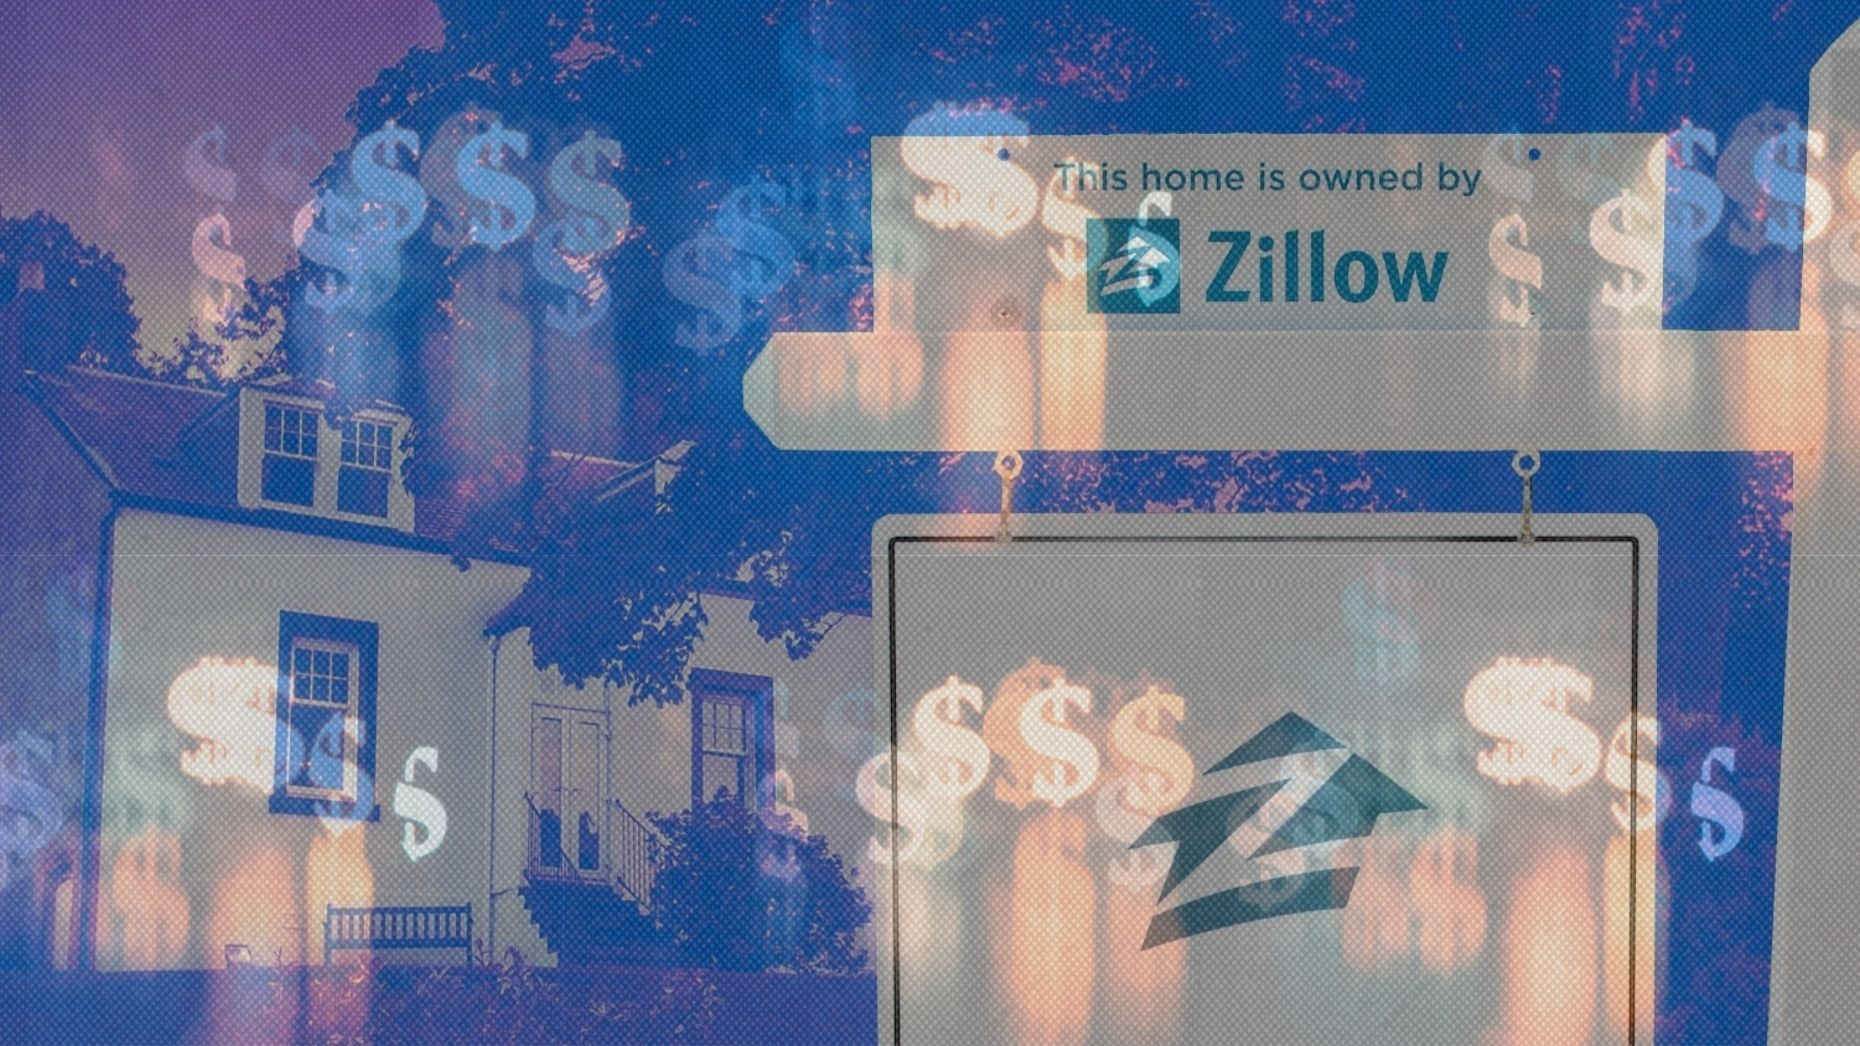 Opendoor and Zillow are losing tens of thousands on each iBuyer home: DelPrete